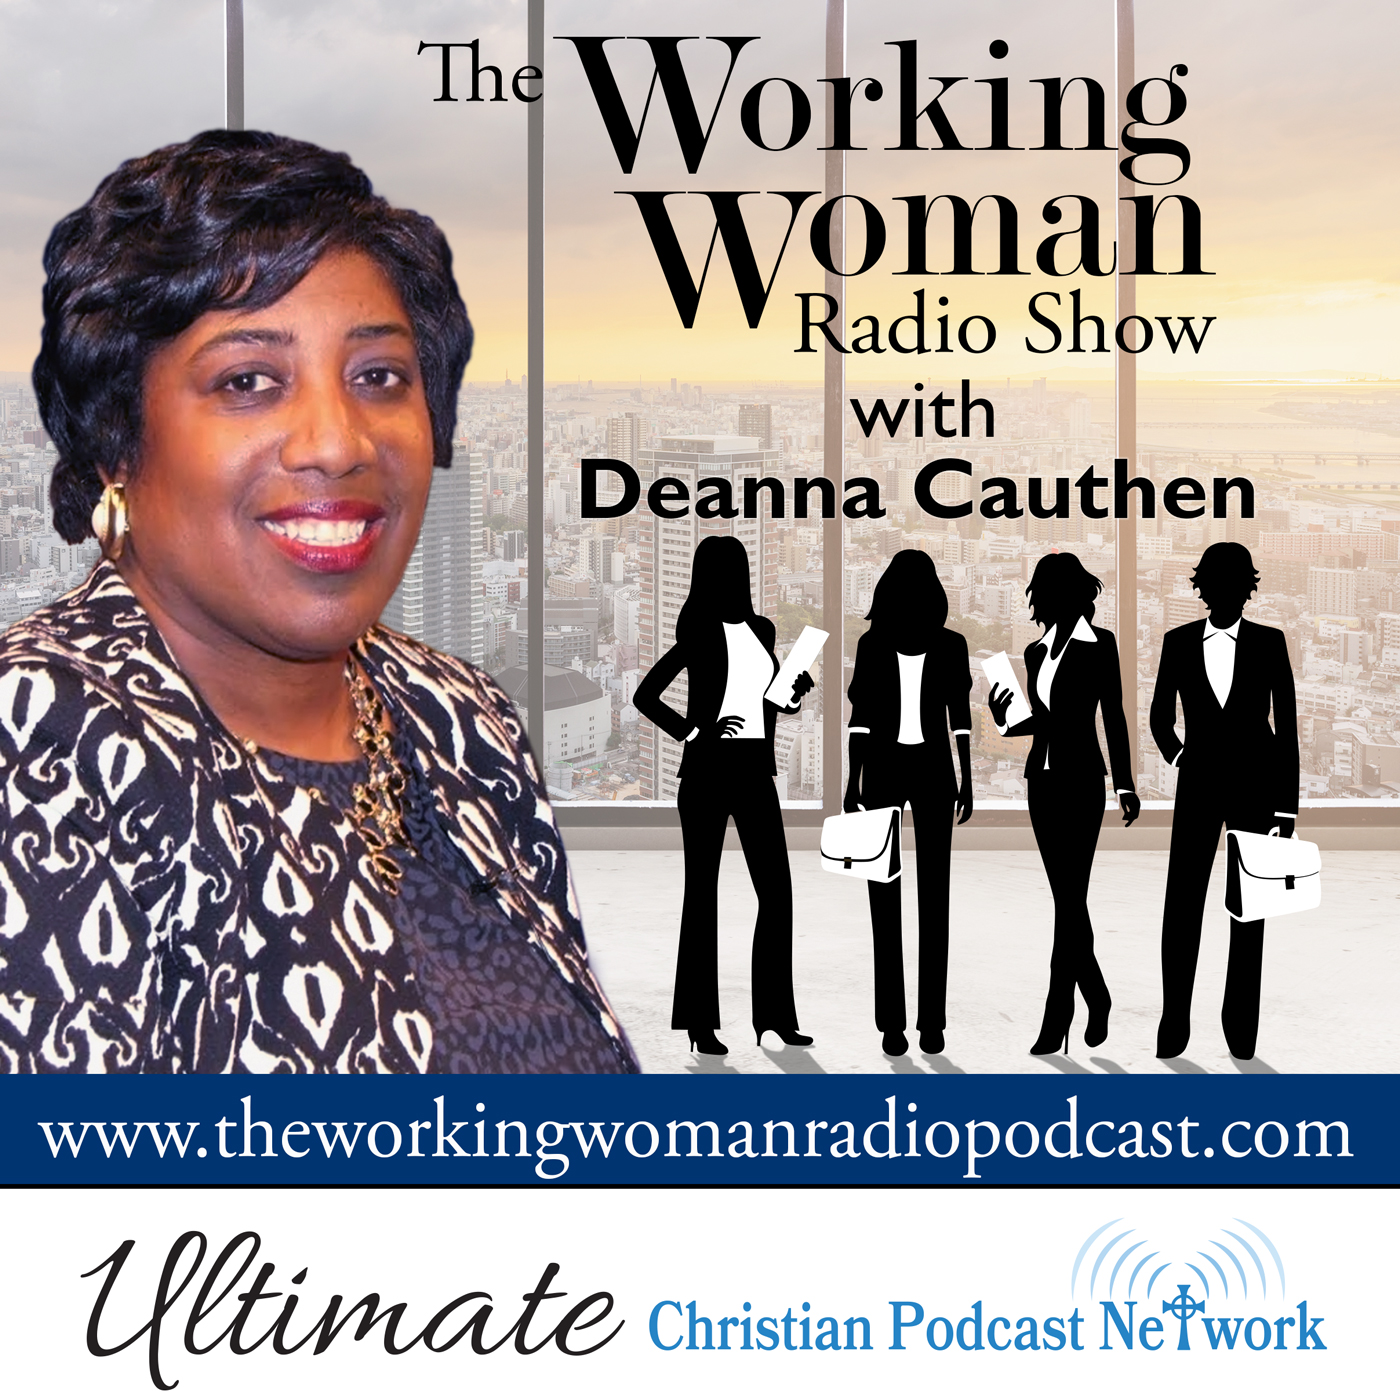 The Working Woman Radio Show